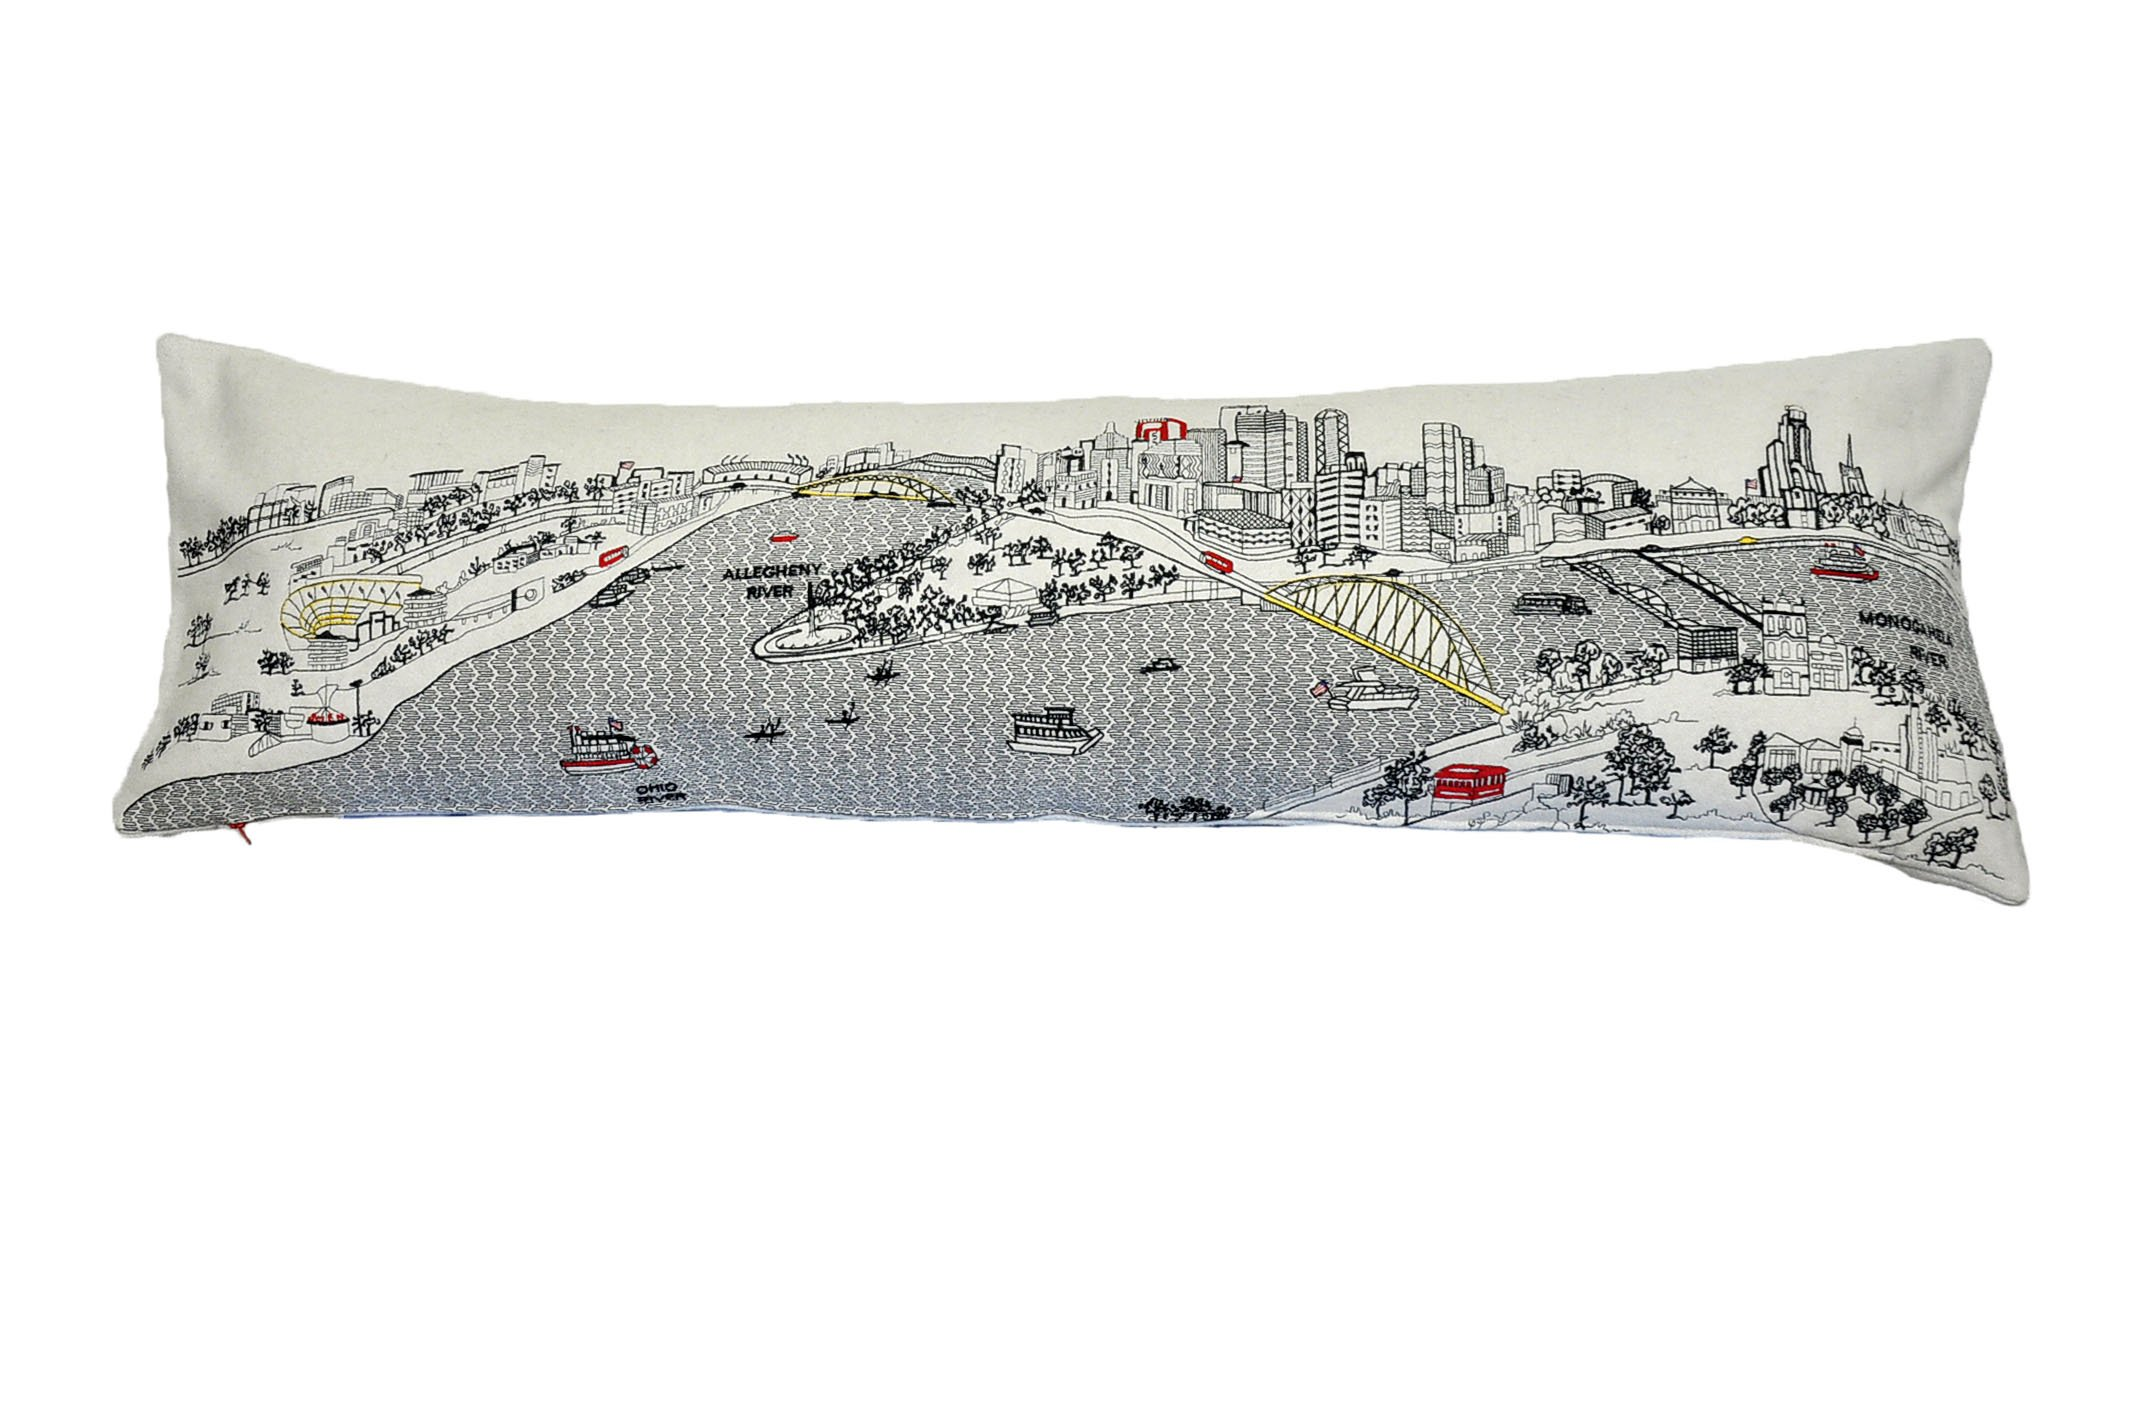 Beyond Cushions Polyester Throw Pillows Beyond Cushions Pittsburgh Daytime Skyline King Size Embroidered Accent Pillow 46 X 14 X 5 Inches Off-White